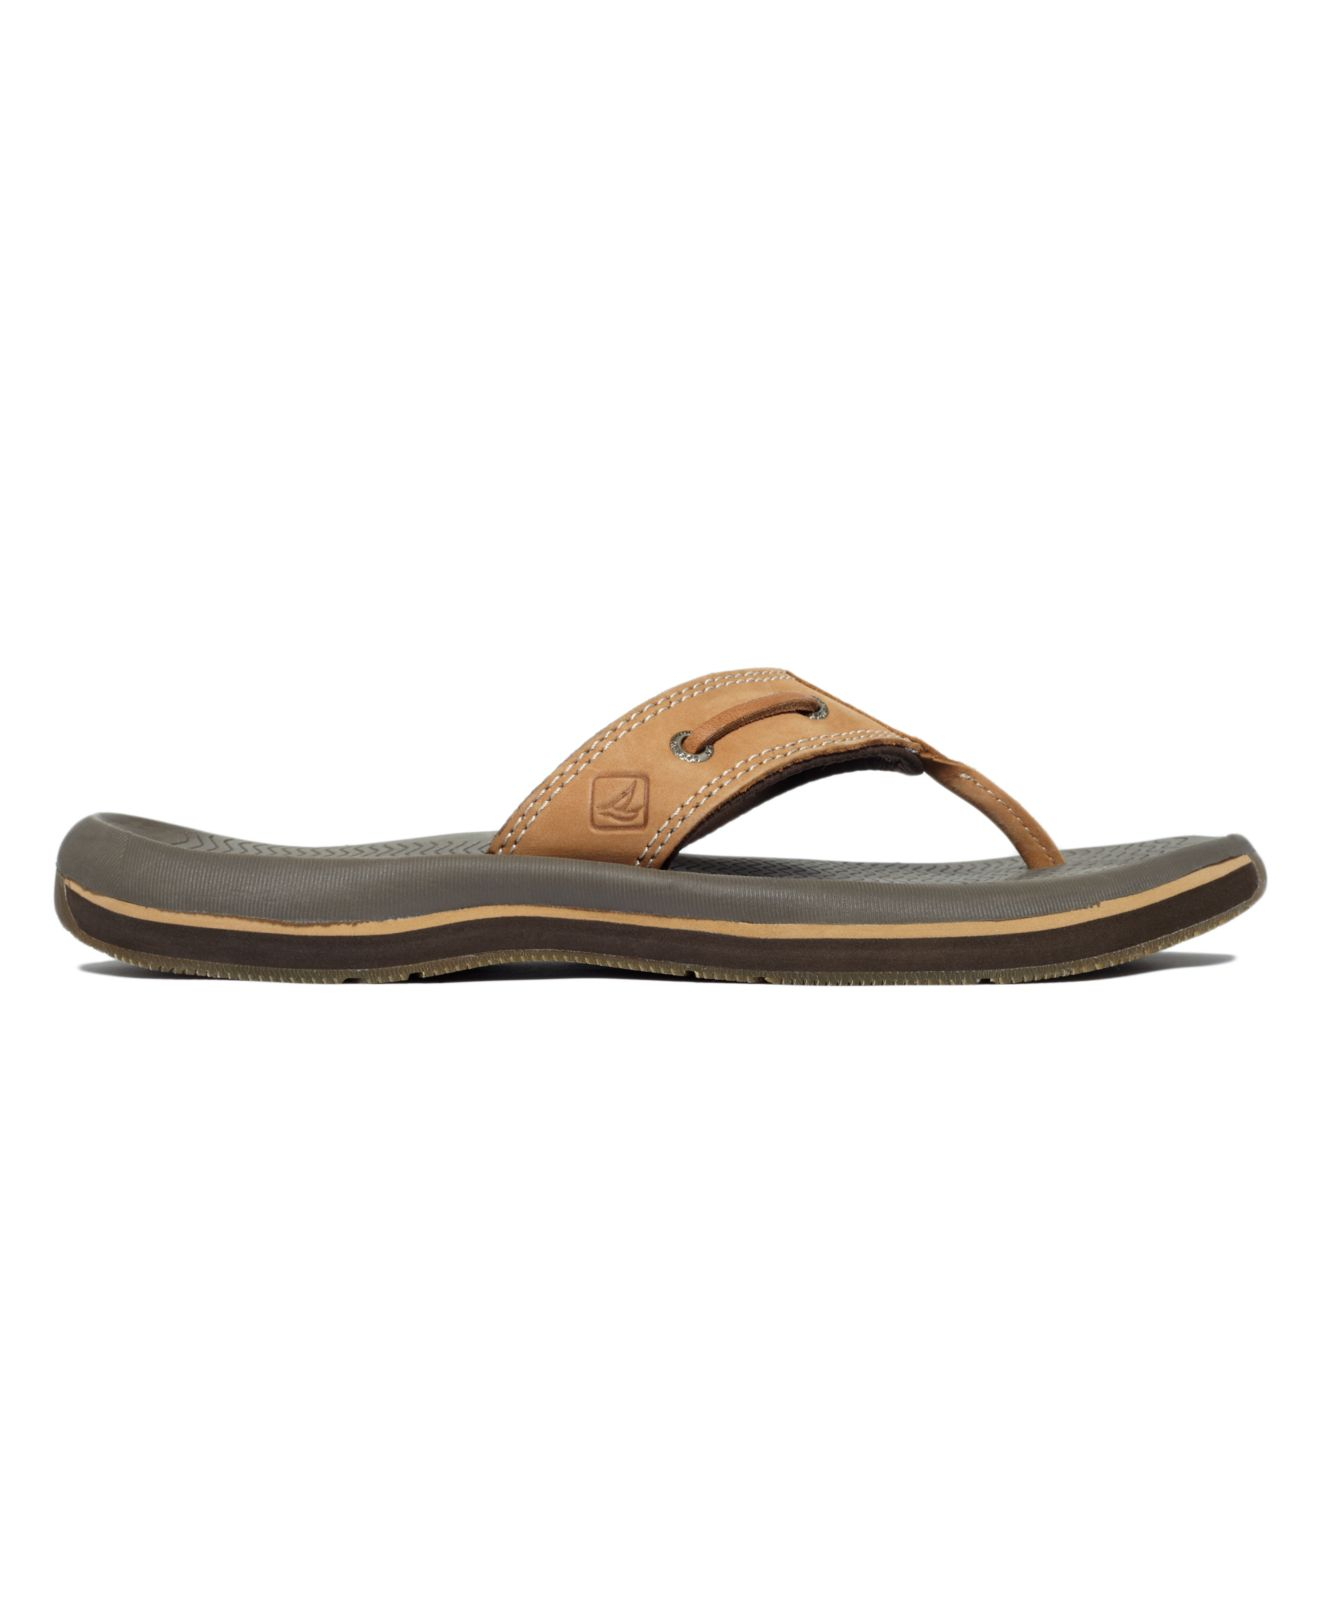 519e122571a5 Lyst - Sperry Top-Sider Men s Santa Cruz Thong Sandals in Brown for Men